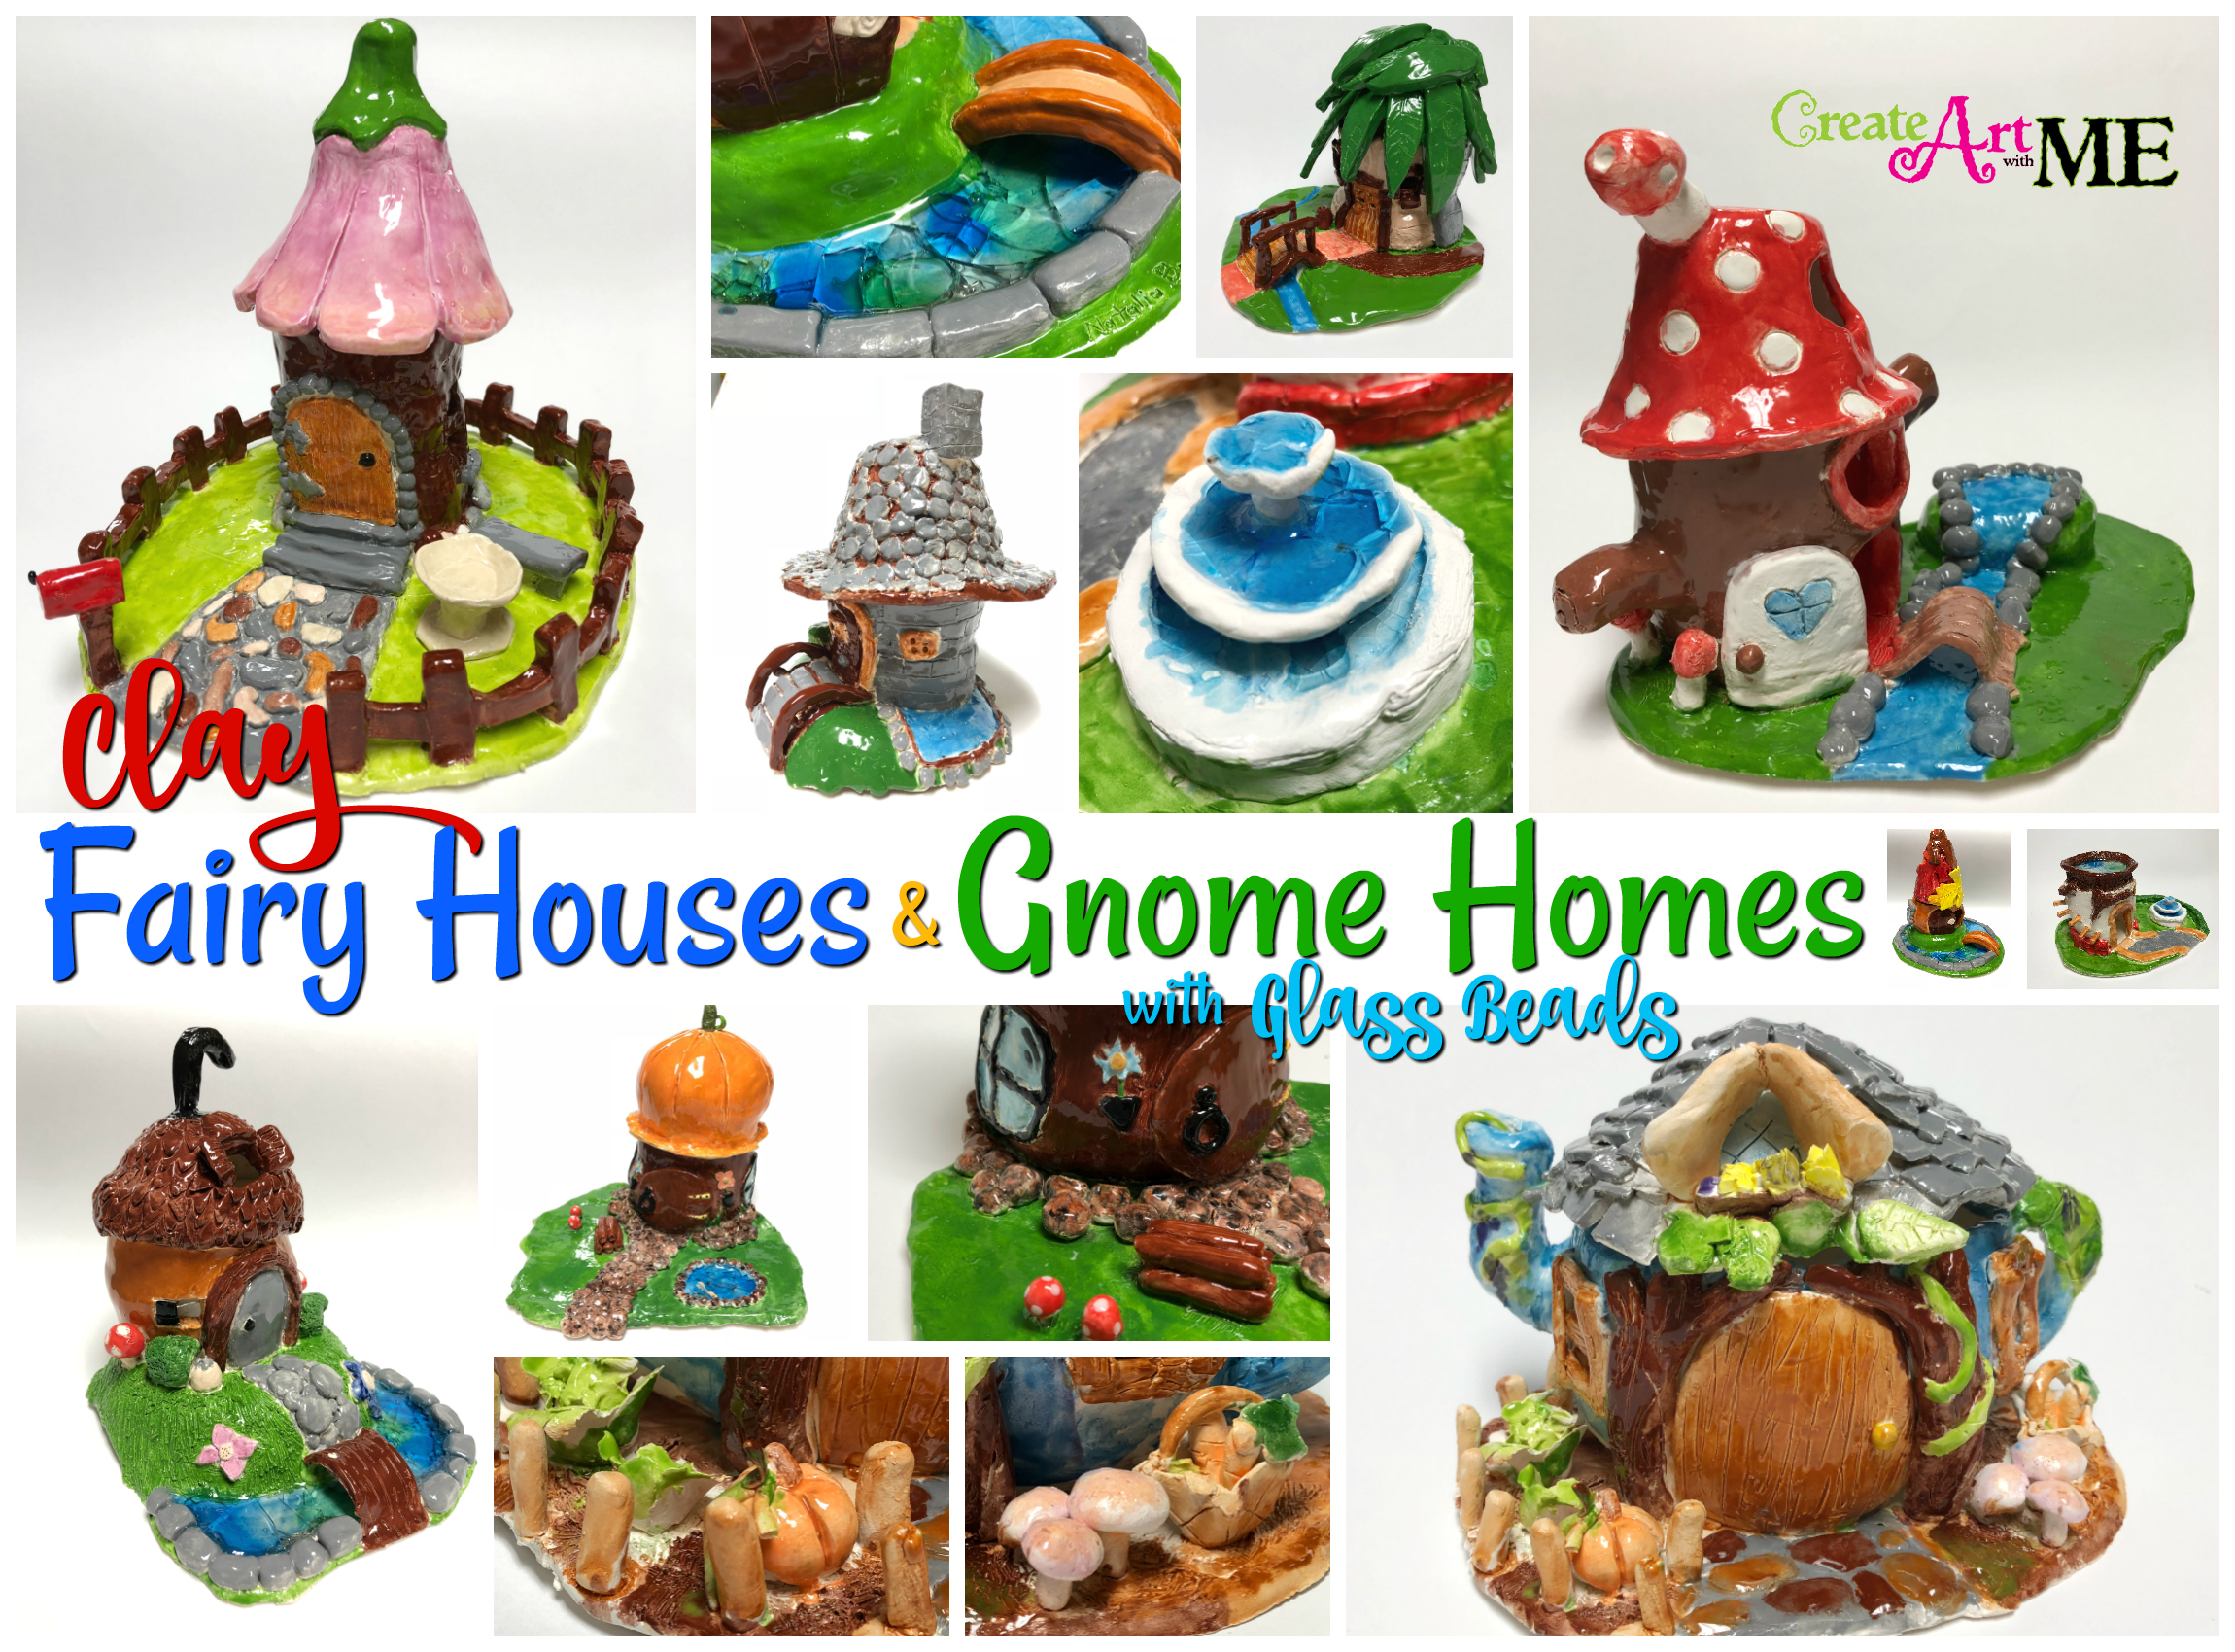 Clay Fairy House and Gnome Homes with Glass Beads - Create